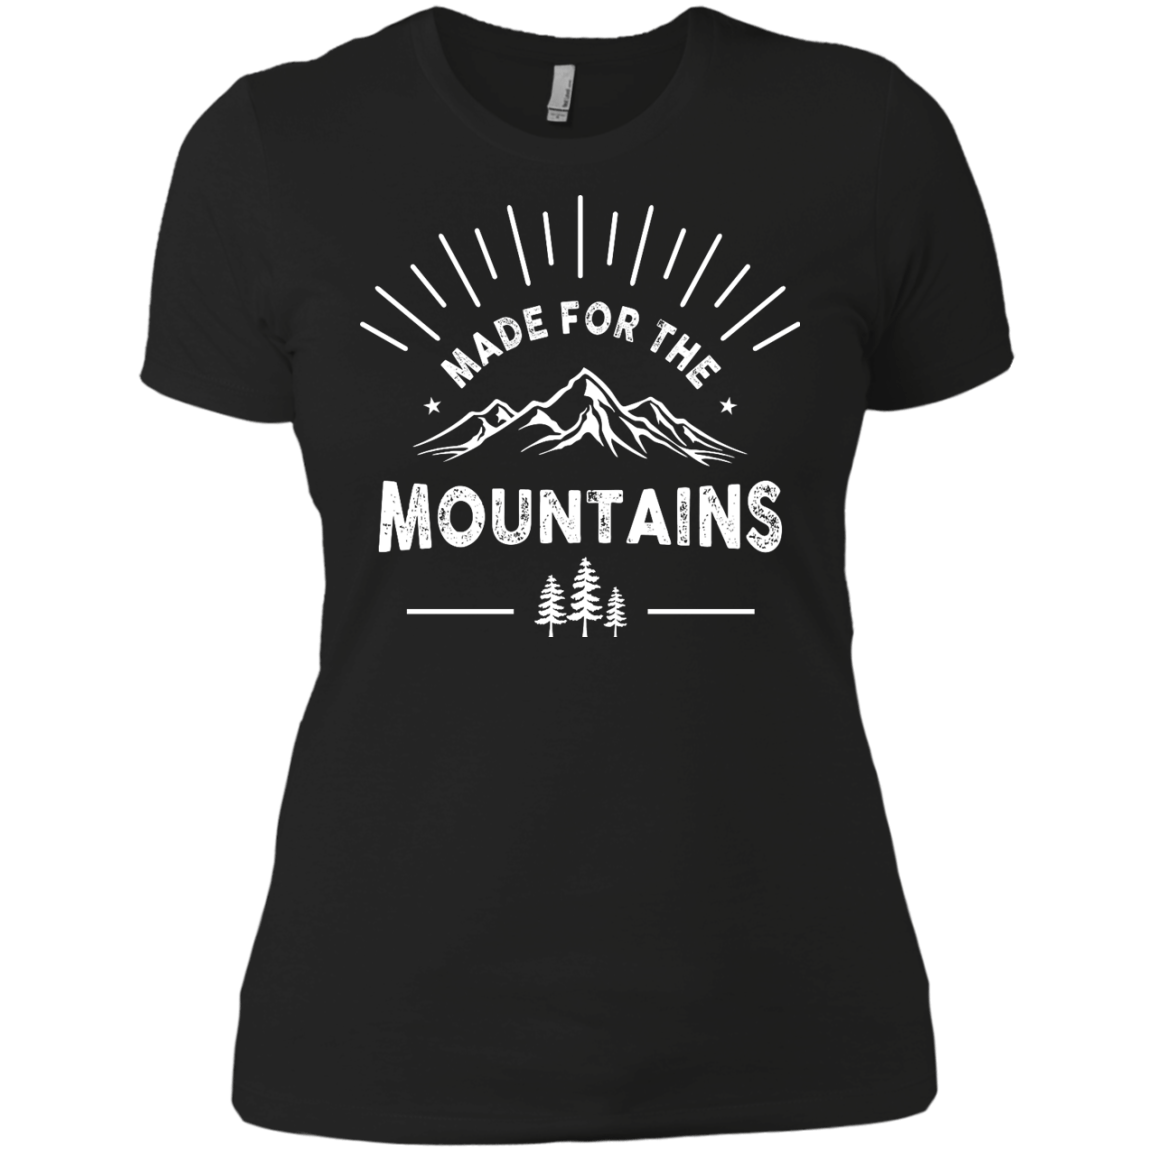 Made For The Mountains Ladies Tees - Powderaddicts